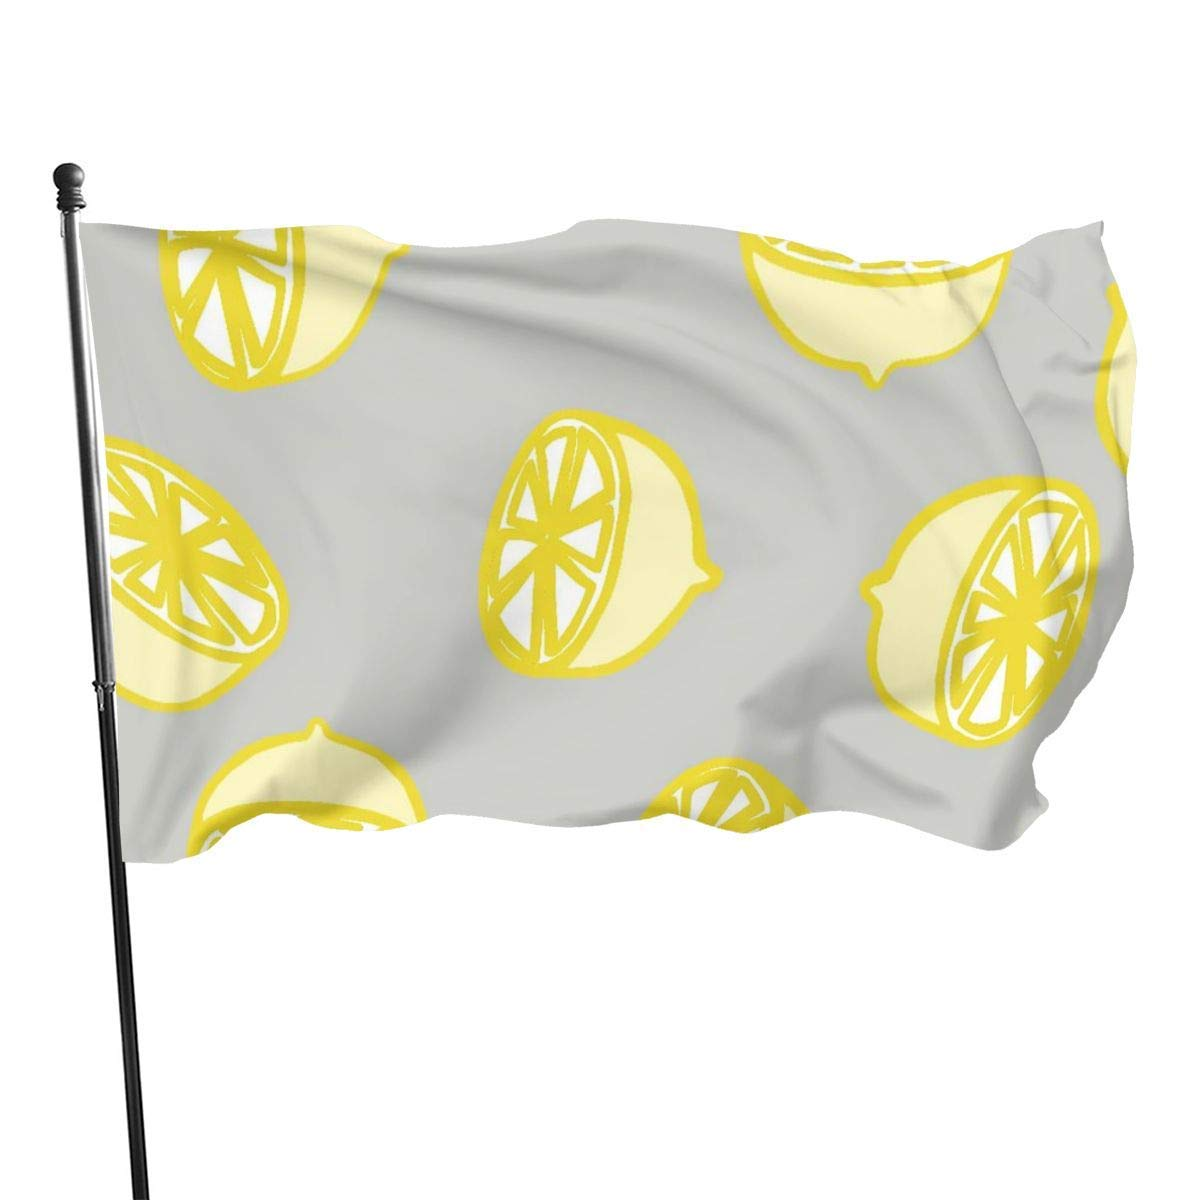 LZHANDA Jardín Banderas Decoración de Exterior, Garden Flag Lemon Grey Background Outdoor Yard Flag Wall Lawn Banner Home Flag Decoration 3 X 5: Amazon.es: Jardín